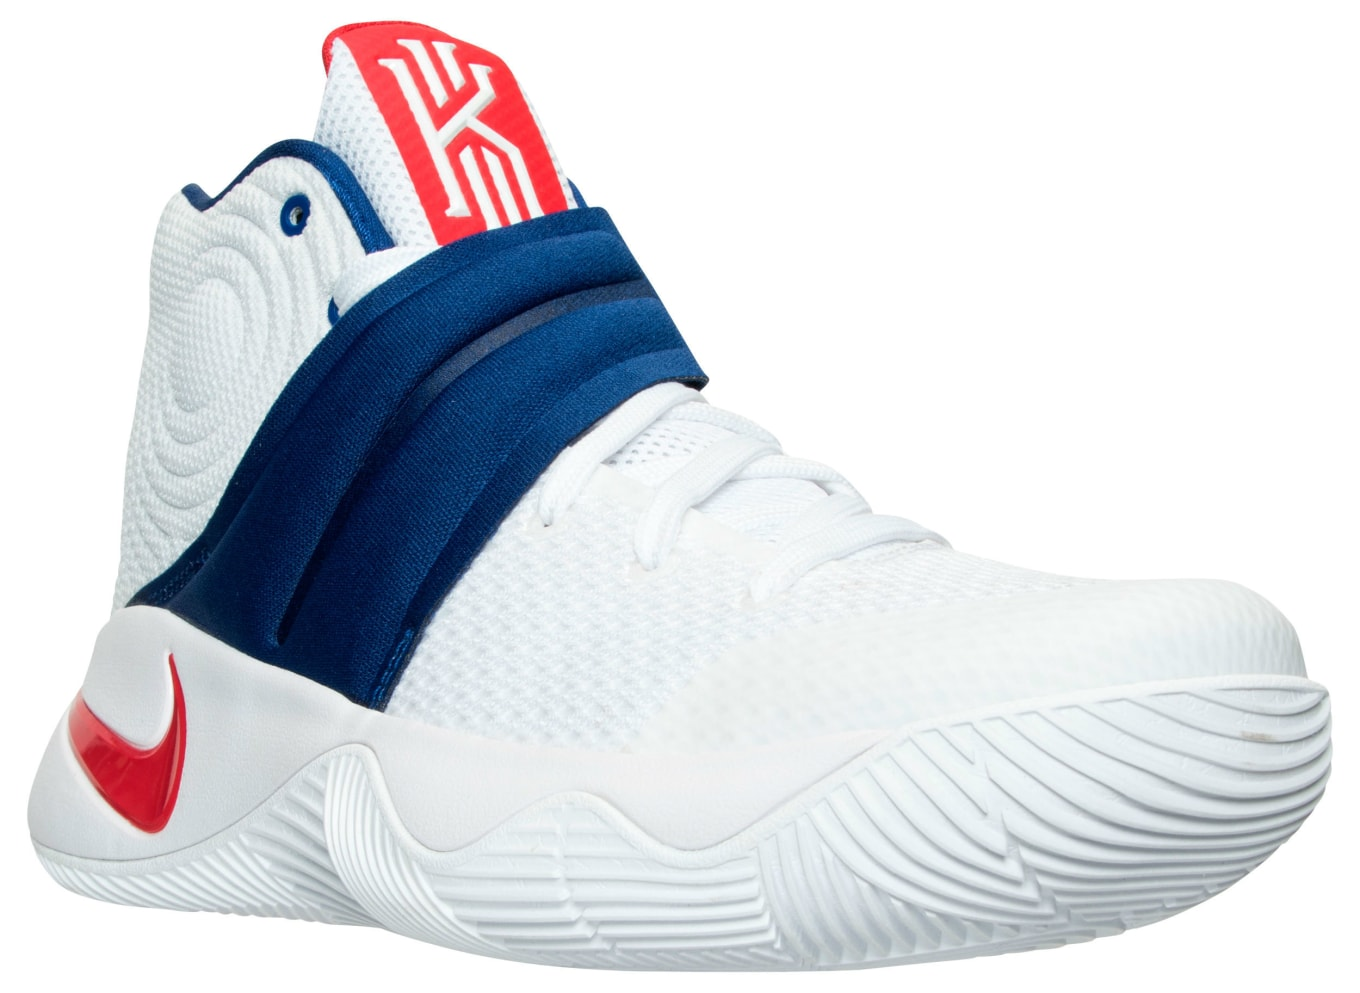 2b4e62a2d260 ... official nike kyrie 2 4th of july usa release date 07259 bd795